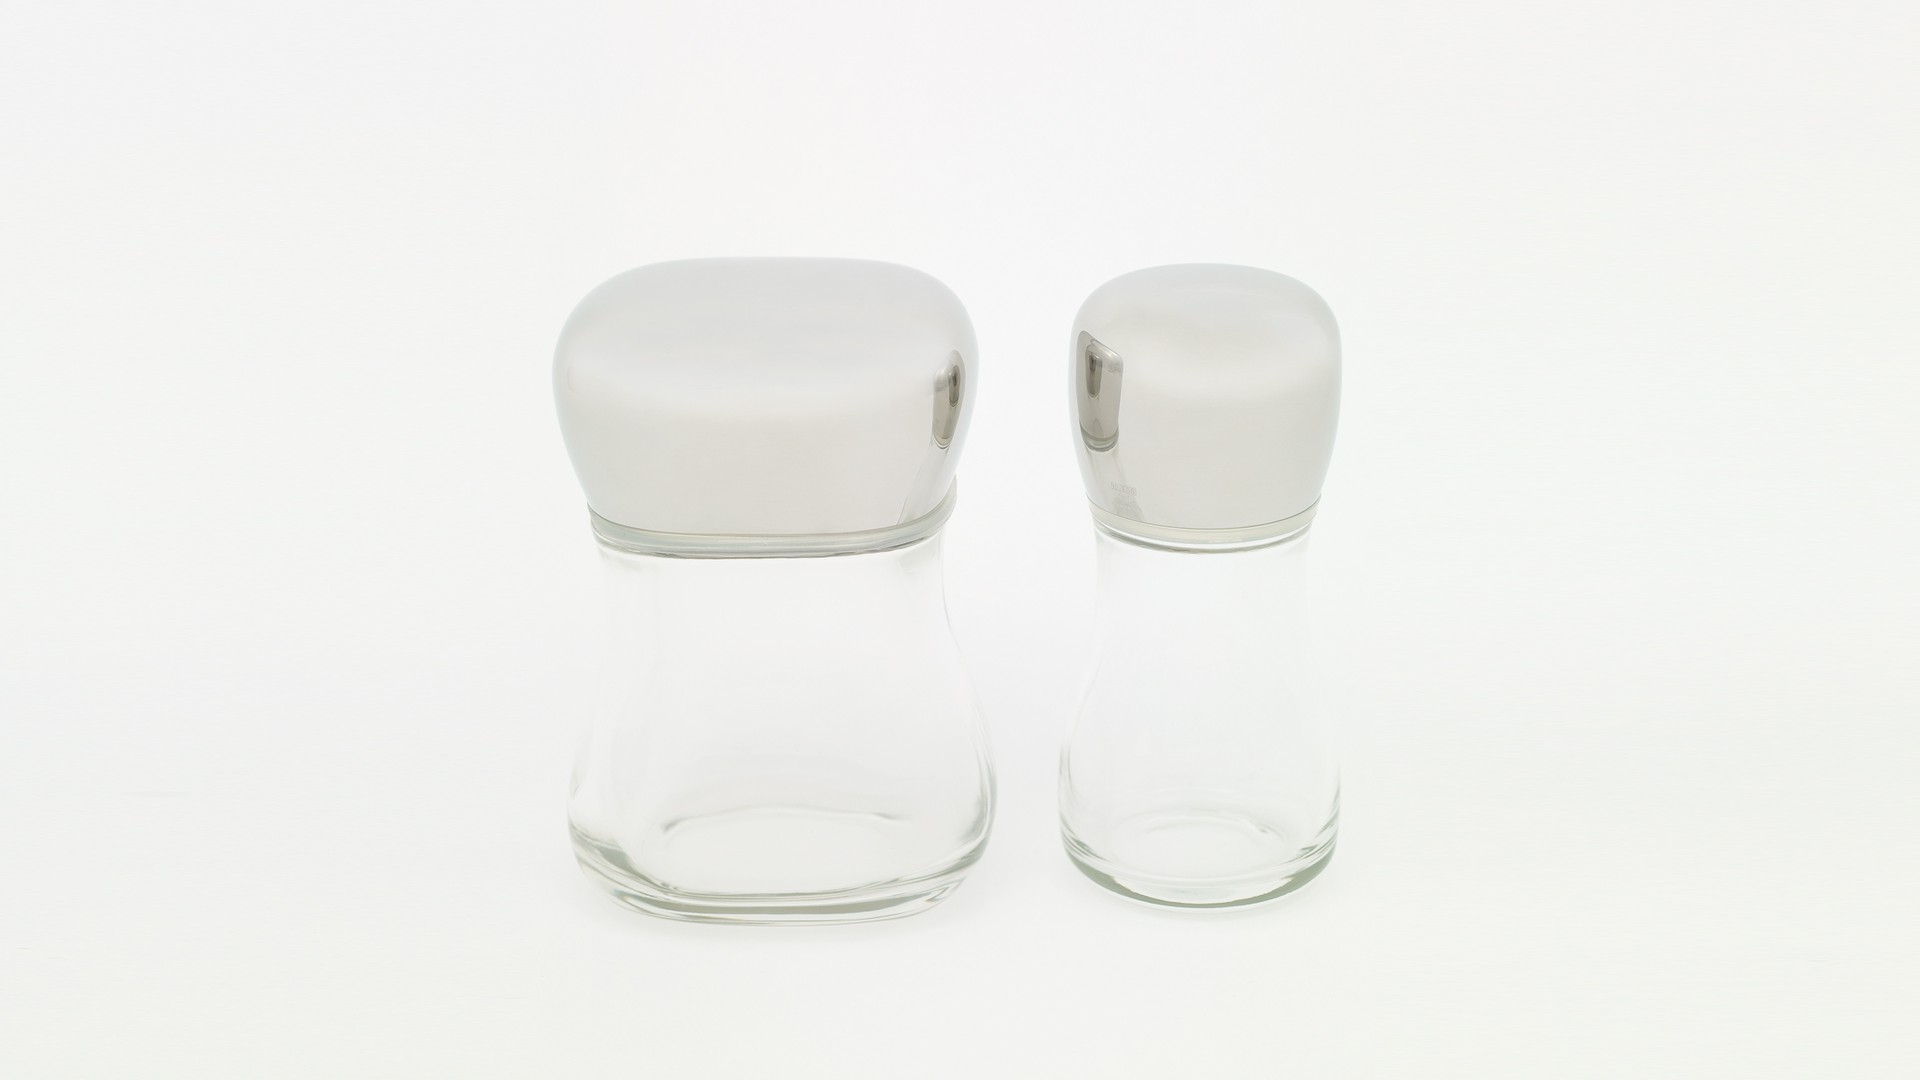 Laika Condiment Containers